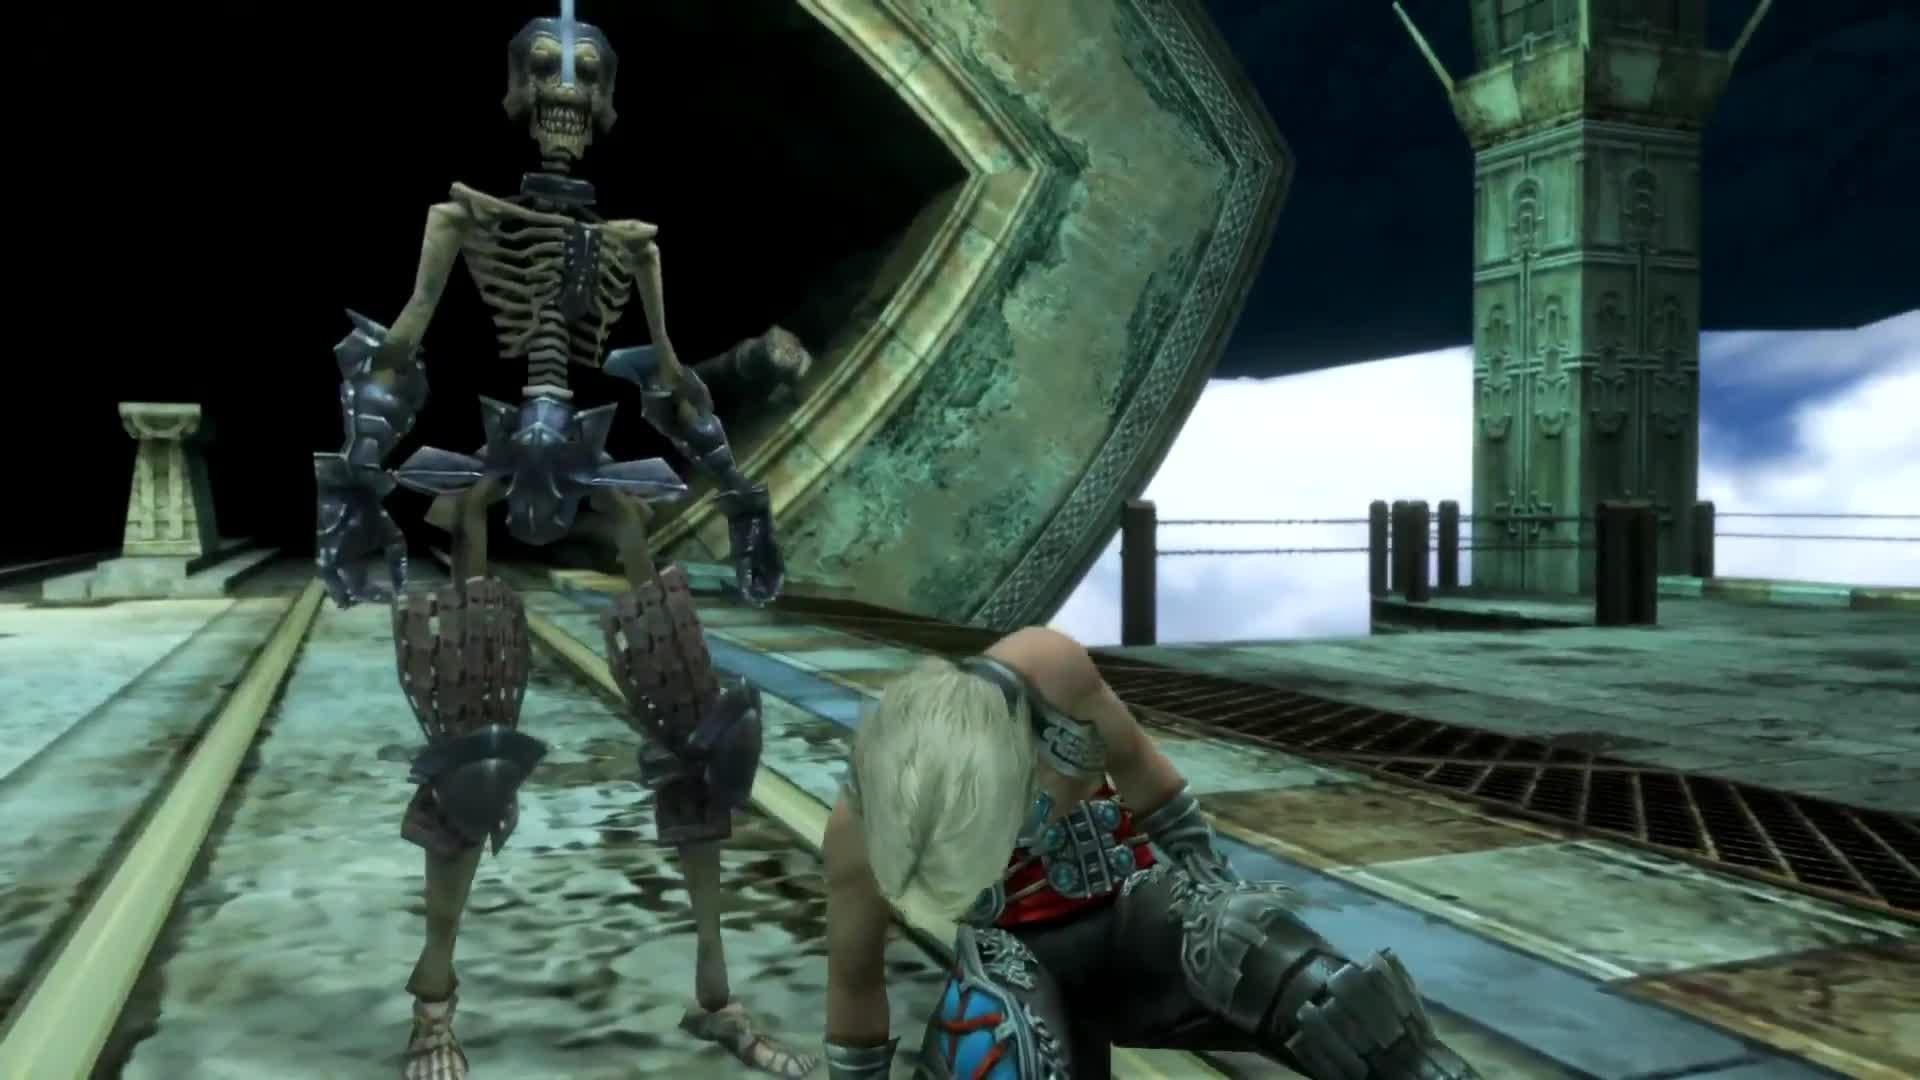 FINAL FANTASY XII THE ZODIAC AGE Gambit System Trailer screen capture